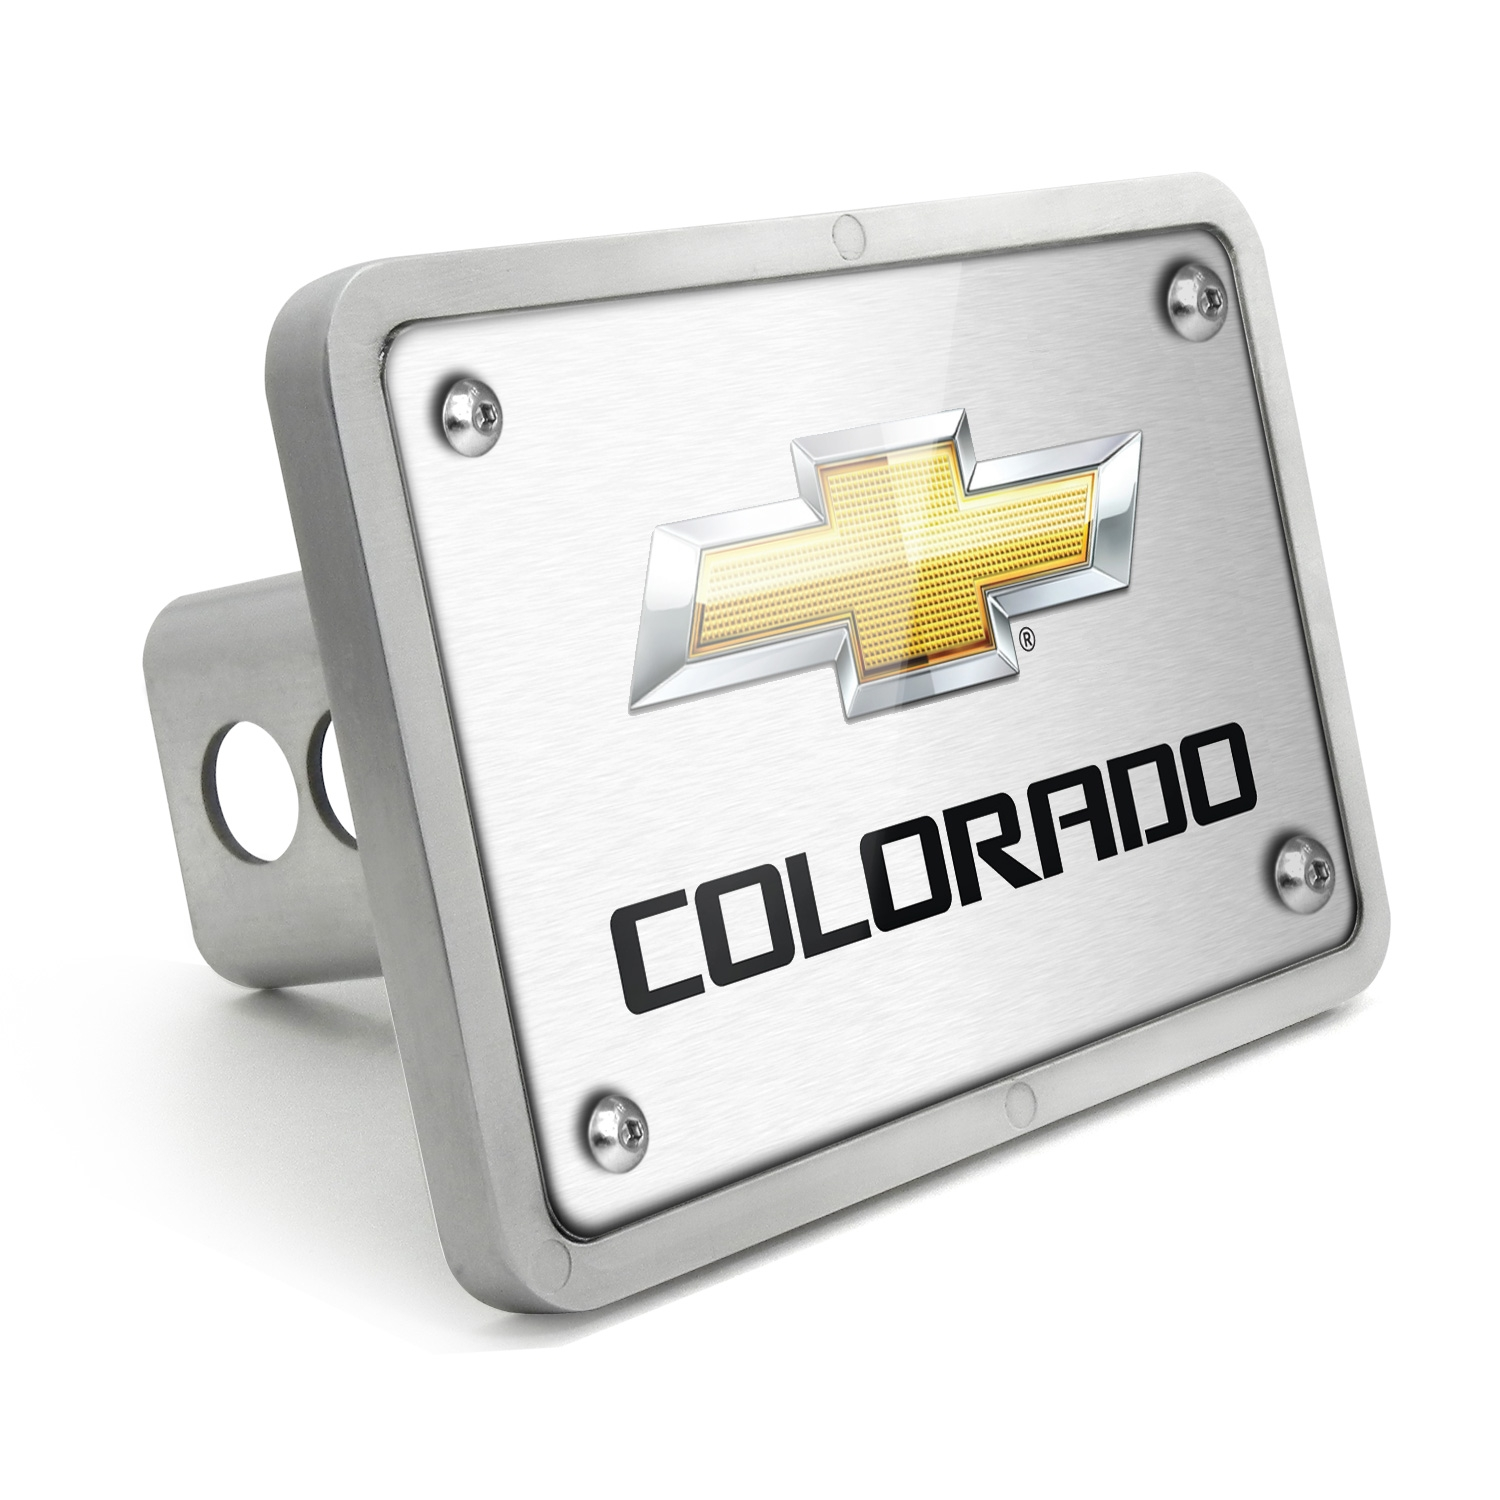 Chevrolet Colorado 2012 UV Graphic Brushed Silver Billet Aluminum 2 inch Tow Hitch Cover